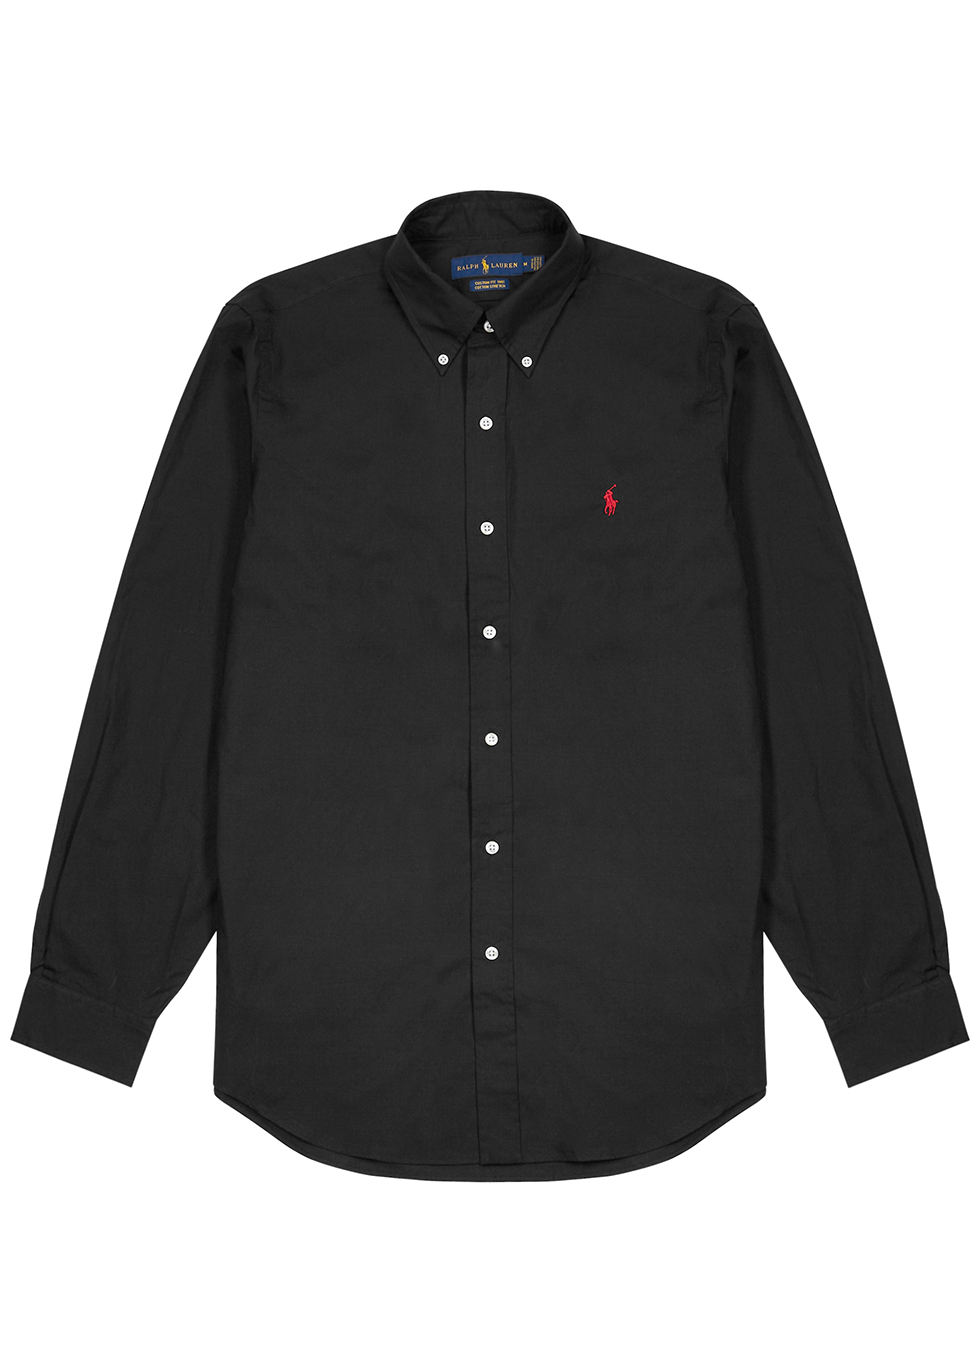 Black cotton-poplin shirt